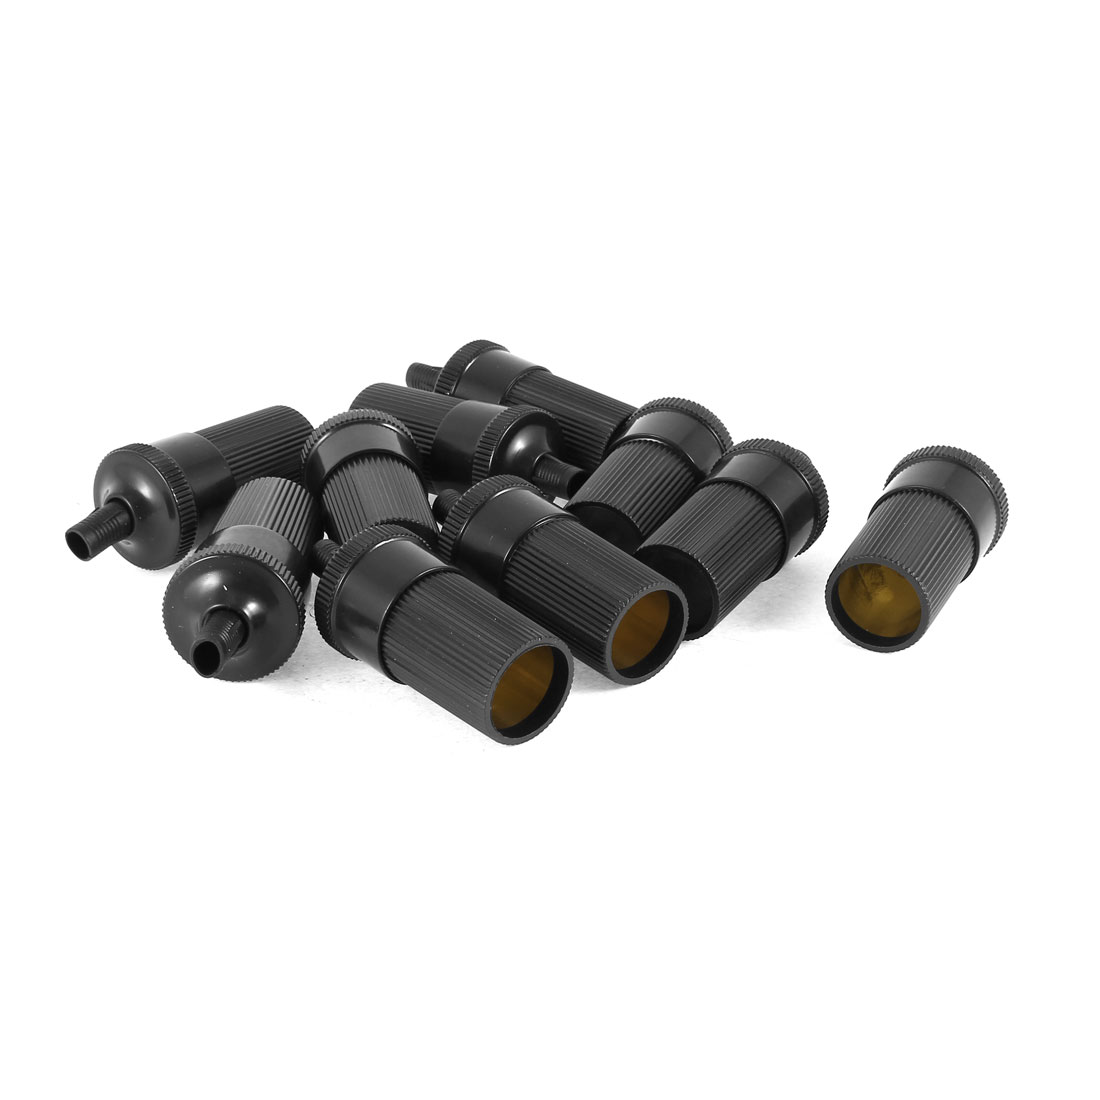 10 Pcs Black Cylinder Shape Power Charger Cigar Cigarette Lighter Socket for Car